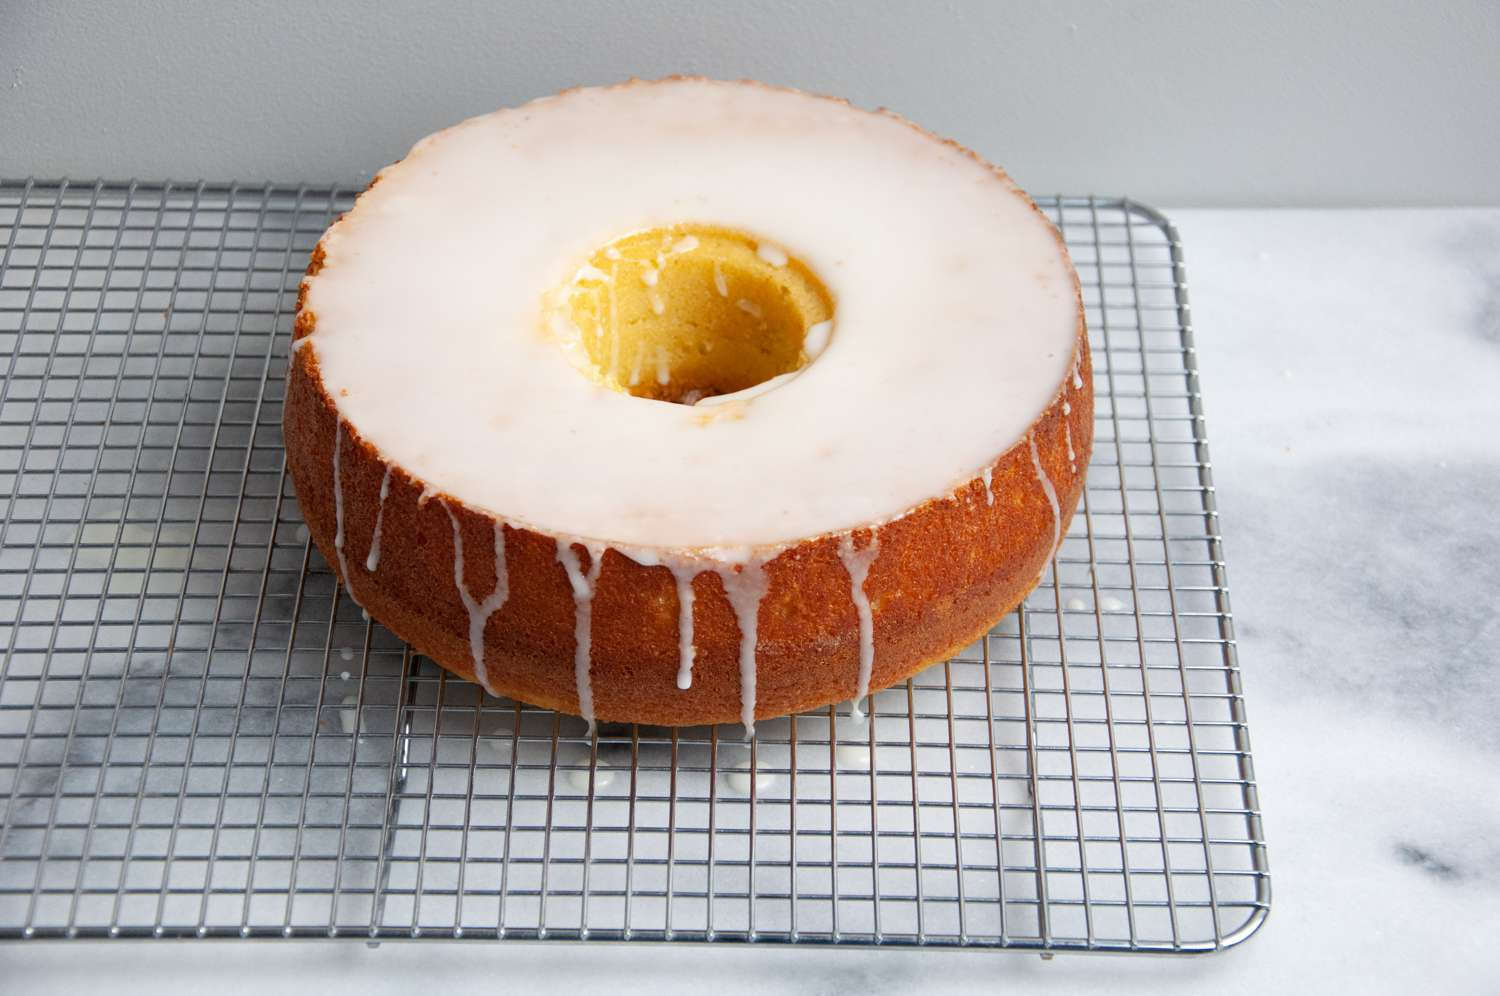 Moroccan Lemon Cake (Meskouta) with glaze on a wire cooling rack